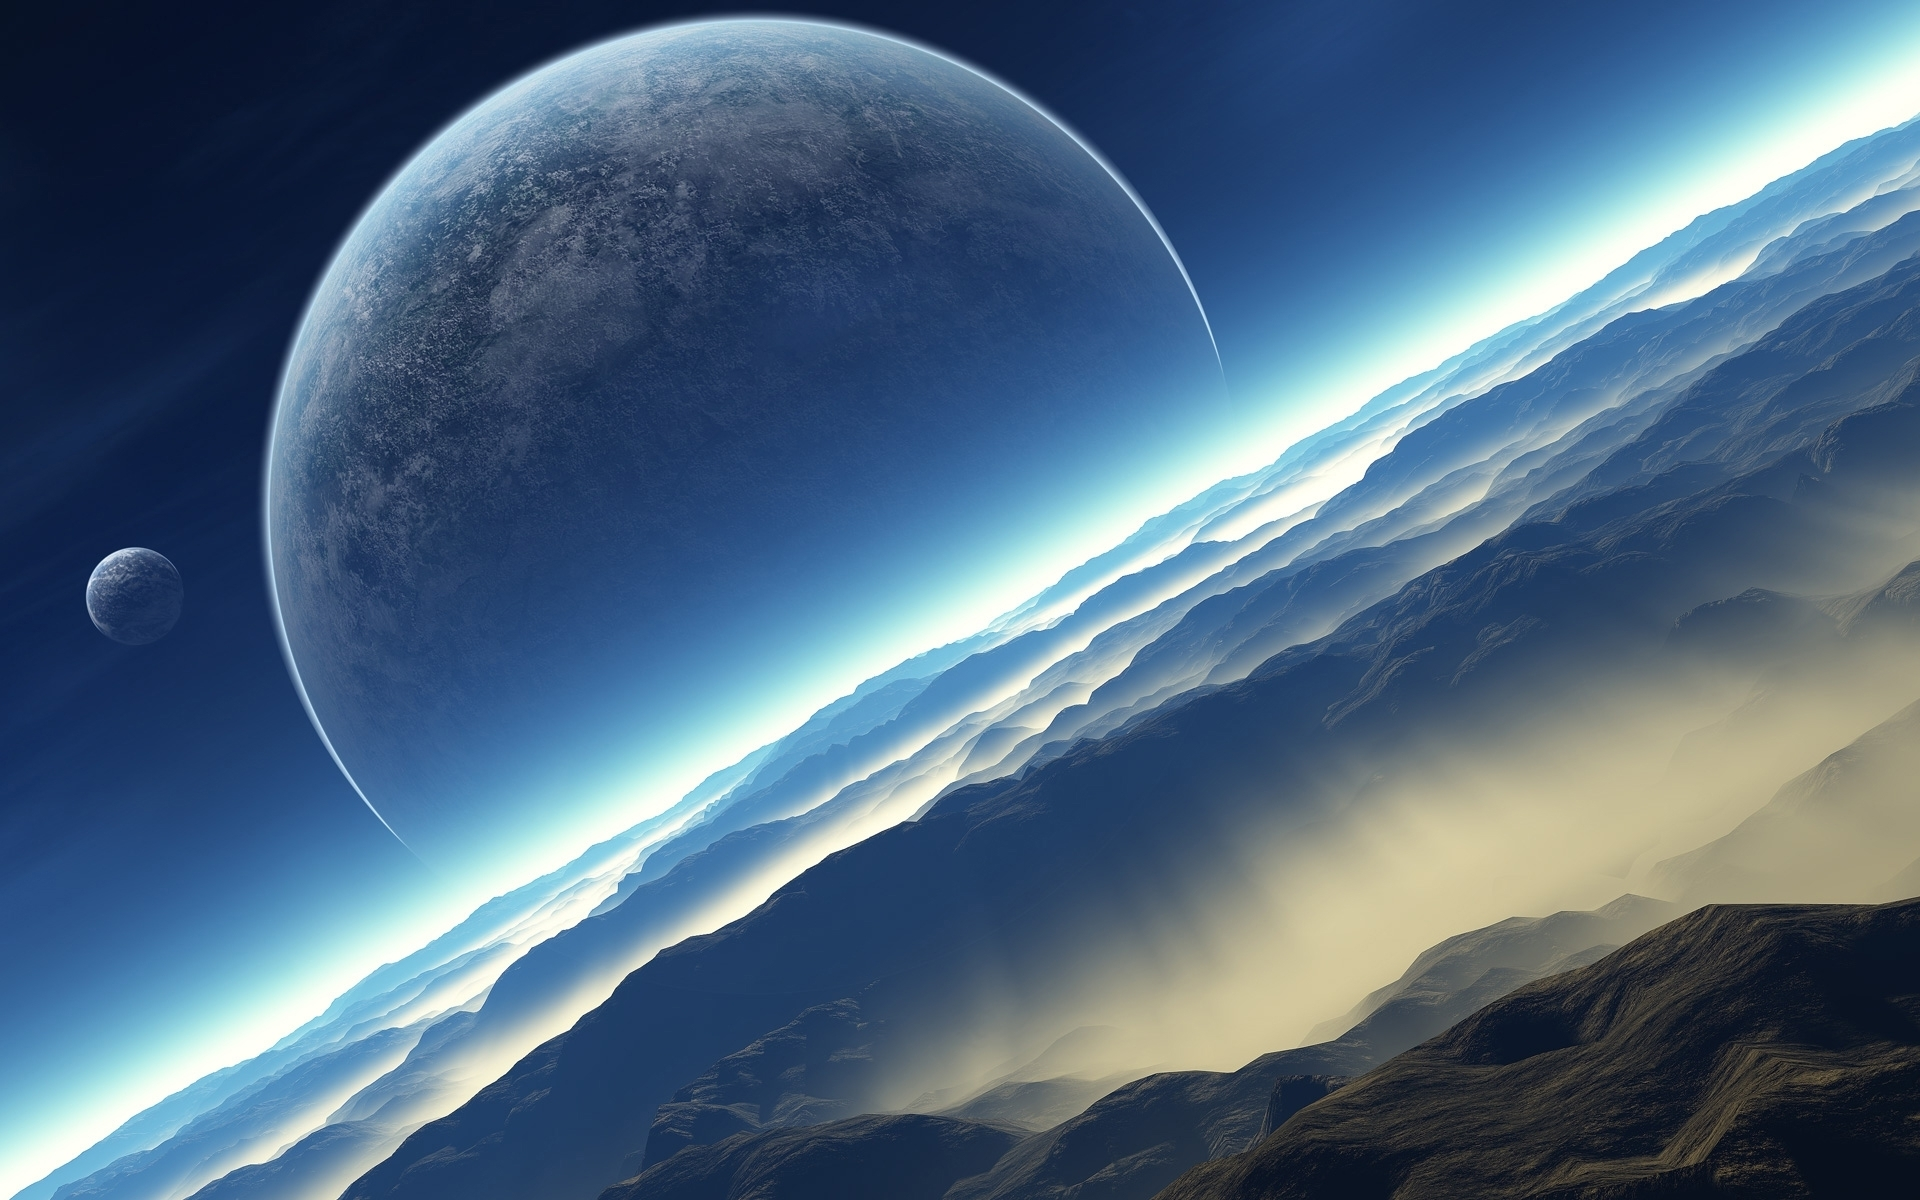 Space Art Wallpaper   Space Wallpaper 7076586 1920x1200